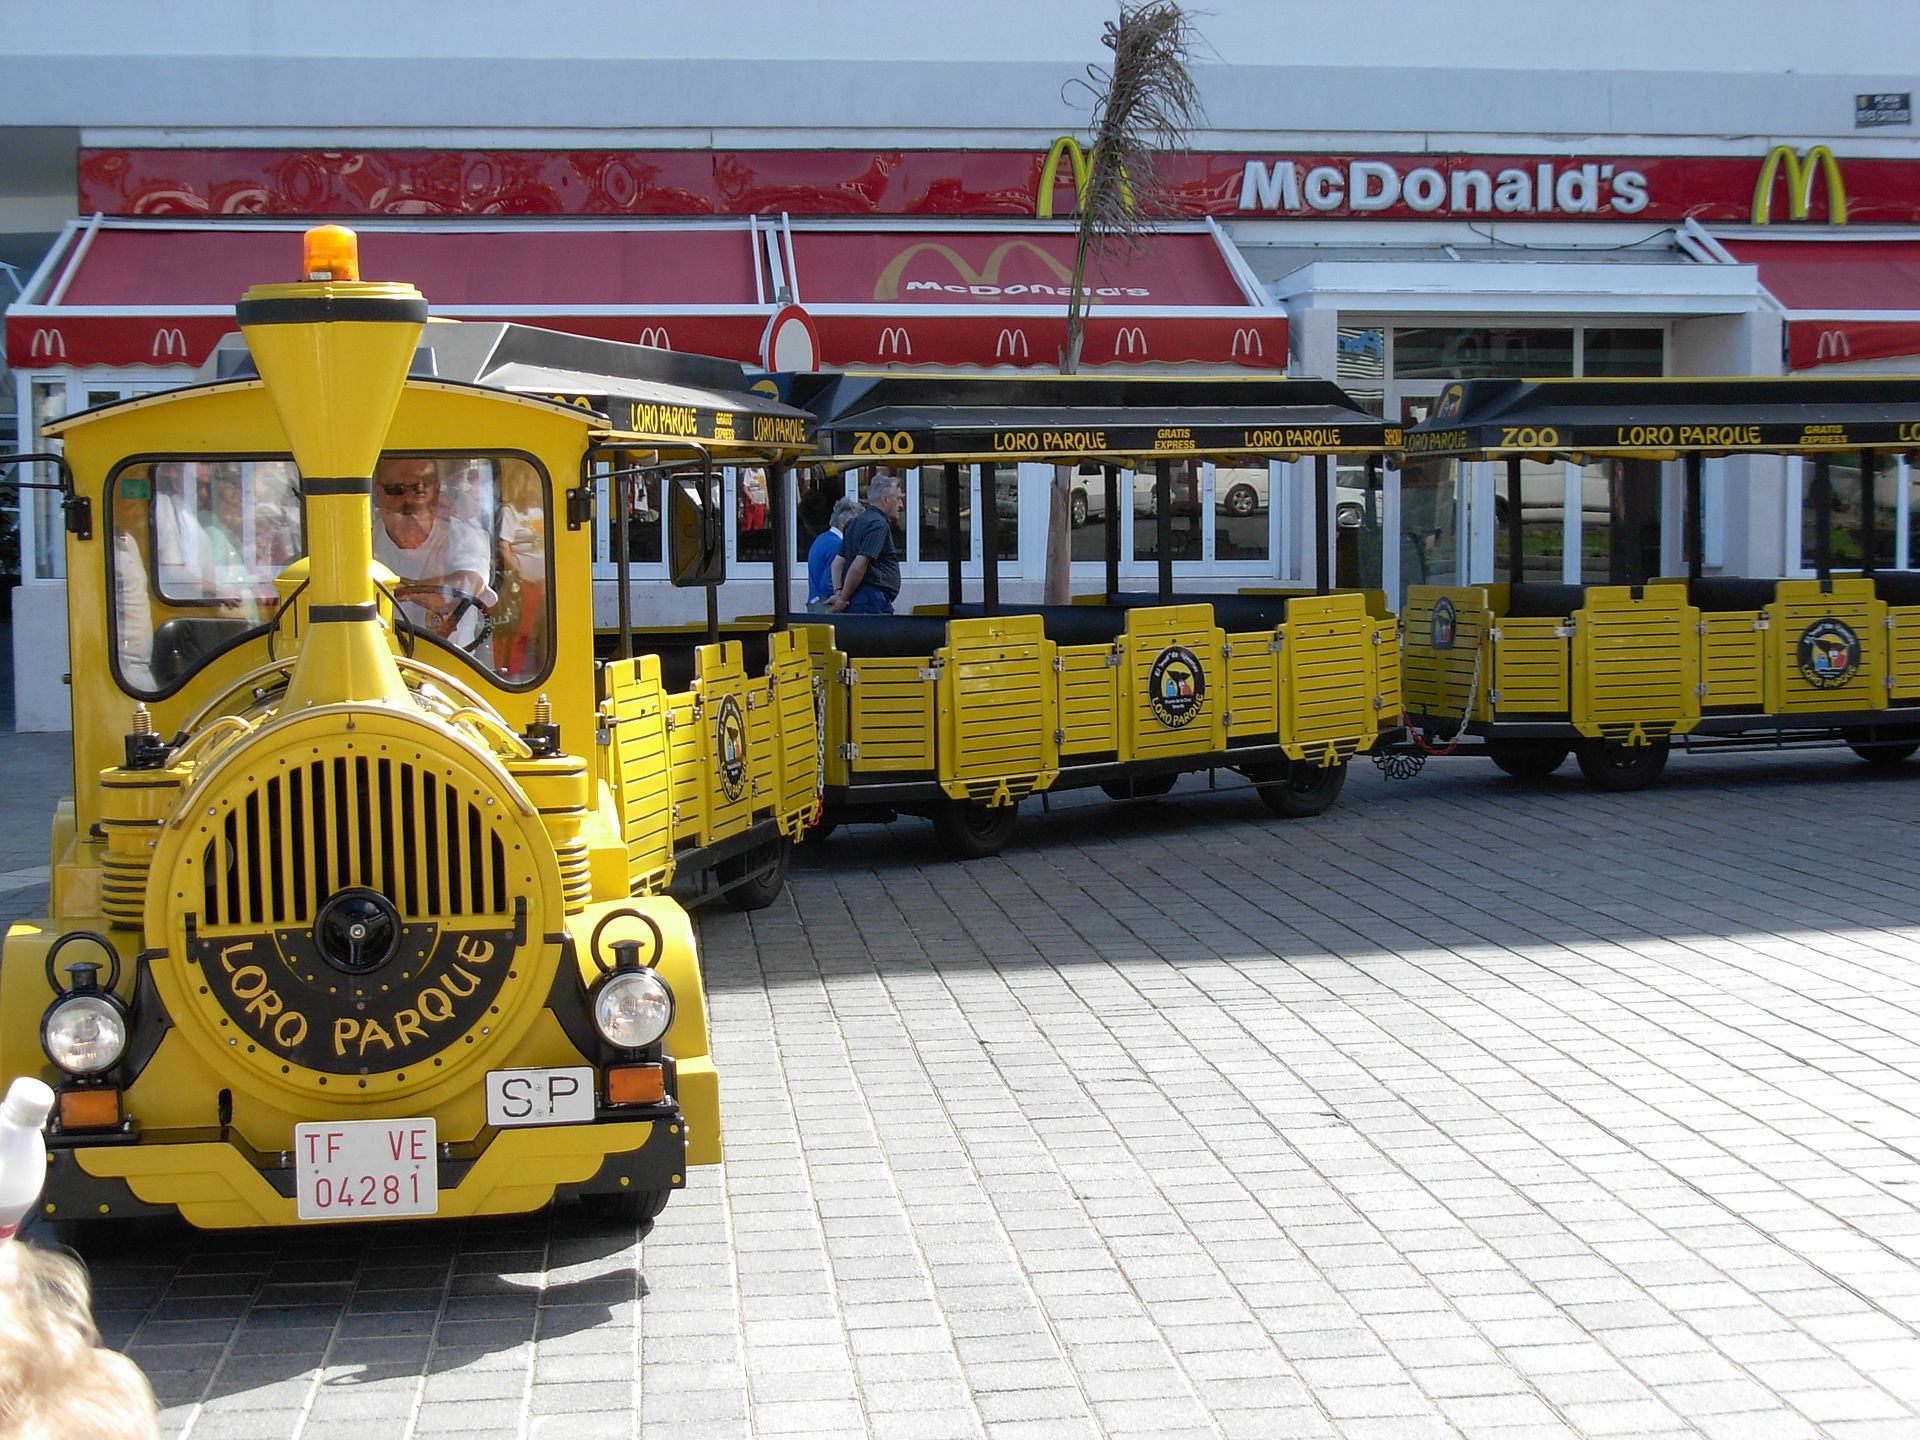 trackless train wikipedia